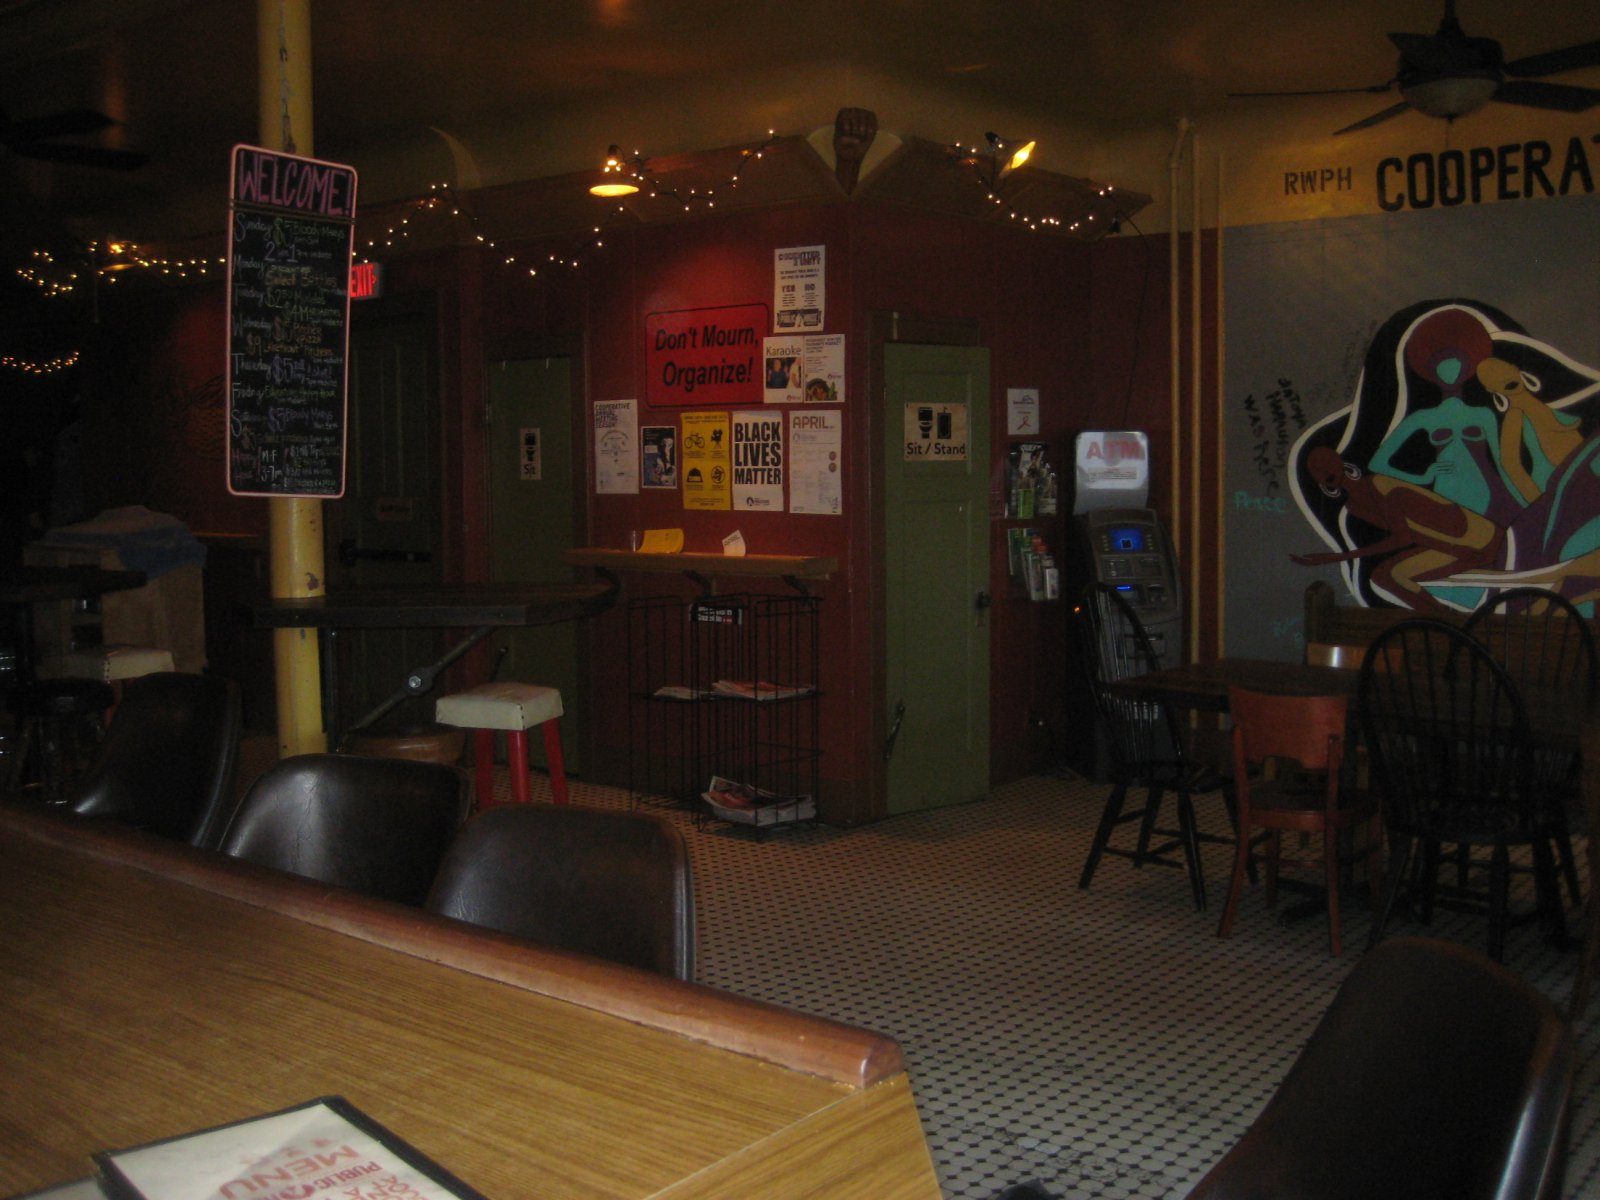 Inside the Riverwest Public House